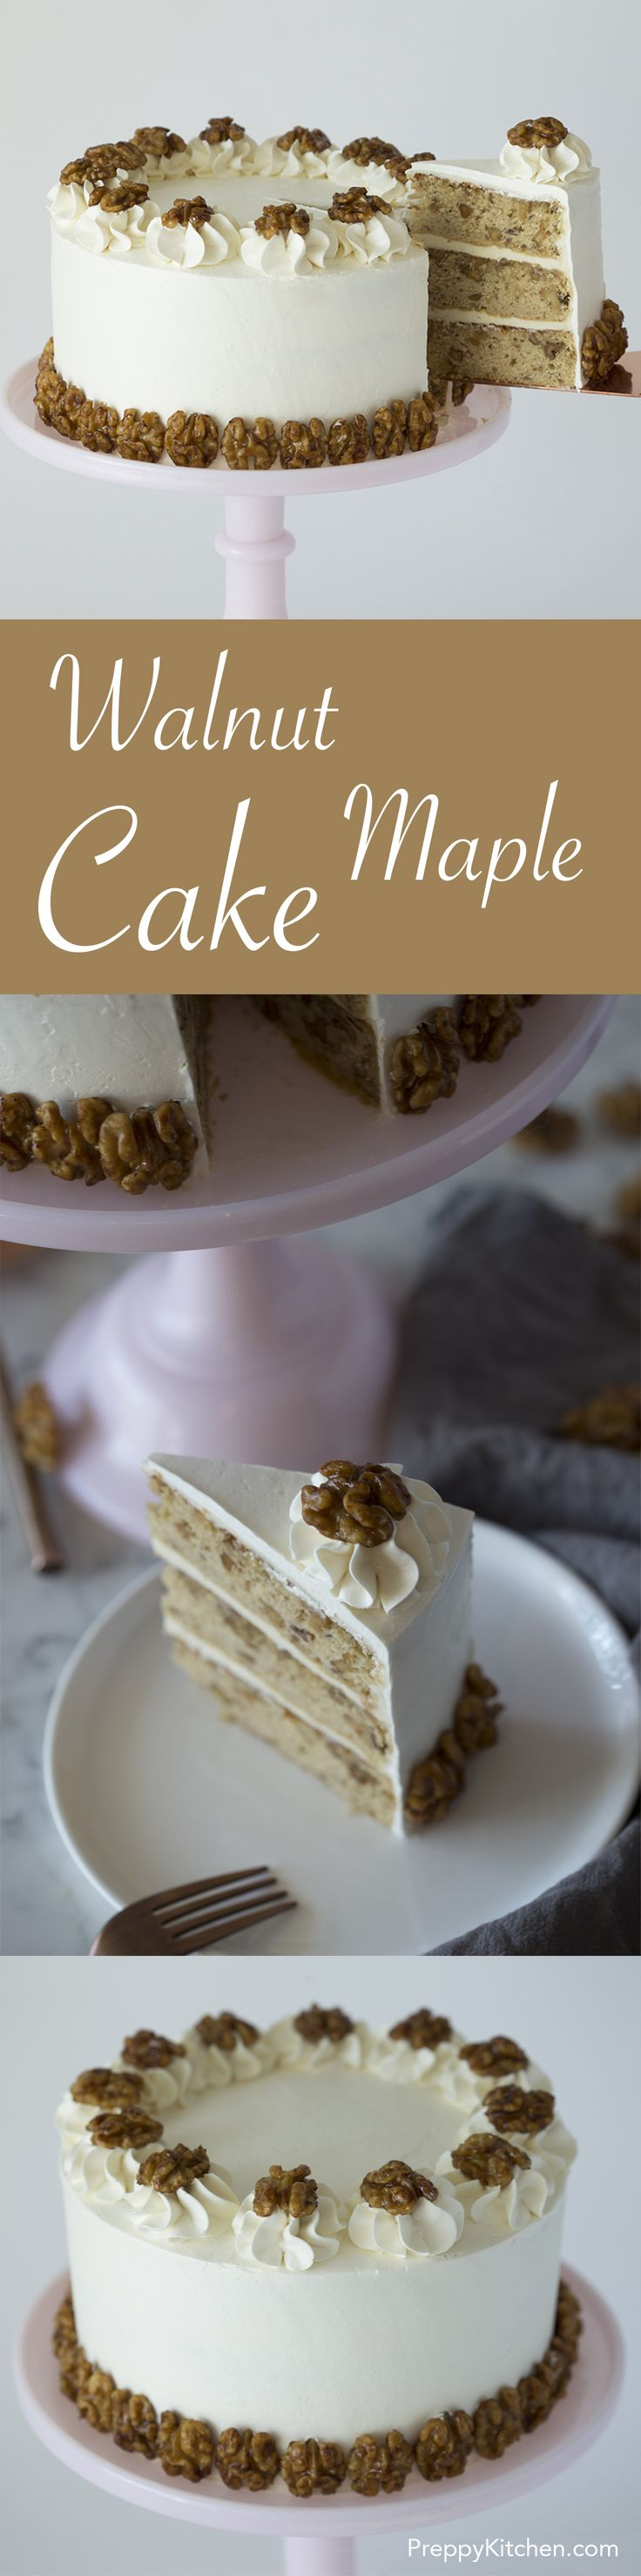 Walnut Maple Cake via @preppykitchen